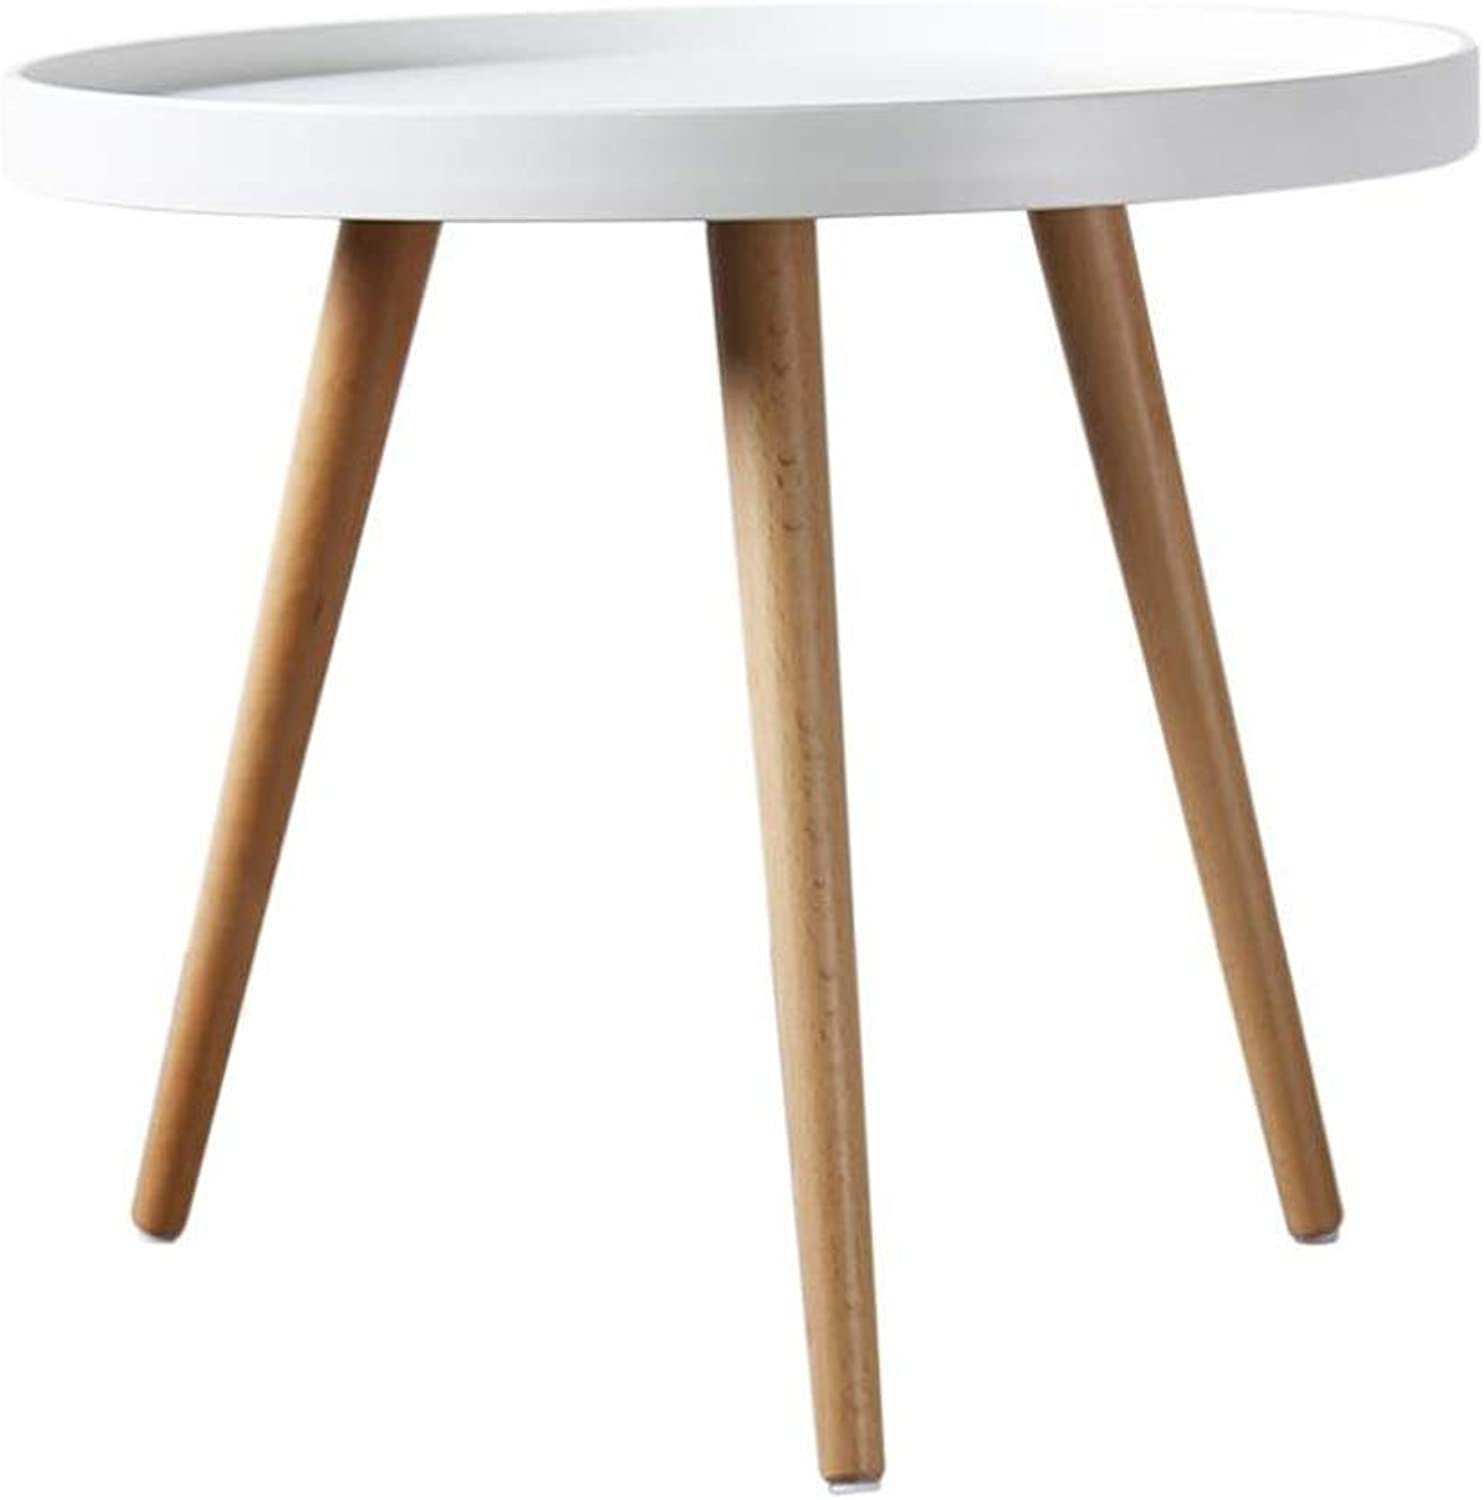 L-Life End Tables Side Table Round Coffee Table with Natural Oak Wood Legs Living Room Sofa Multi-Function Side (color   White)